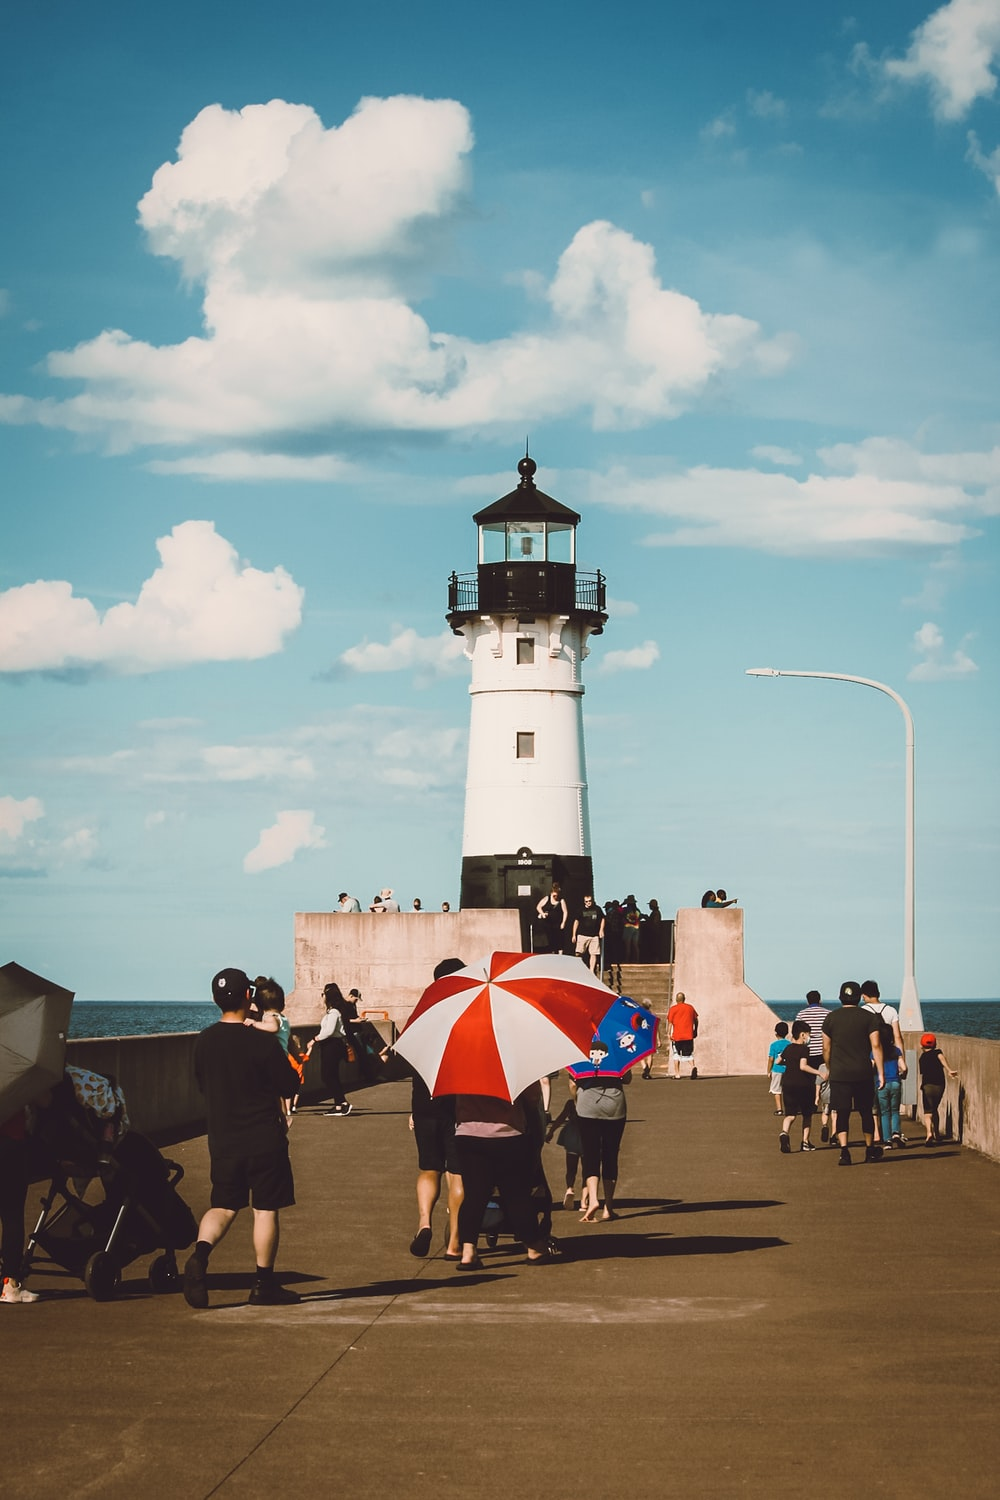 people walking near white and black lighthouse under blue and white cloudy sky during daytime